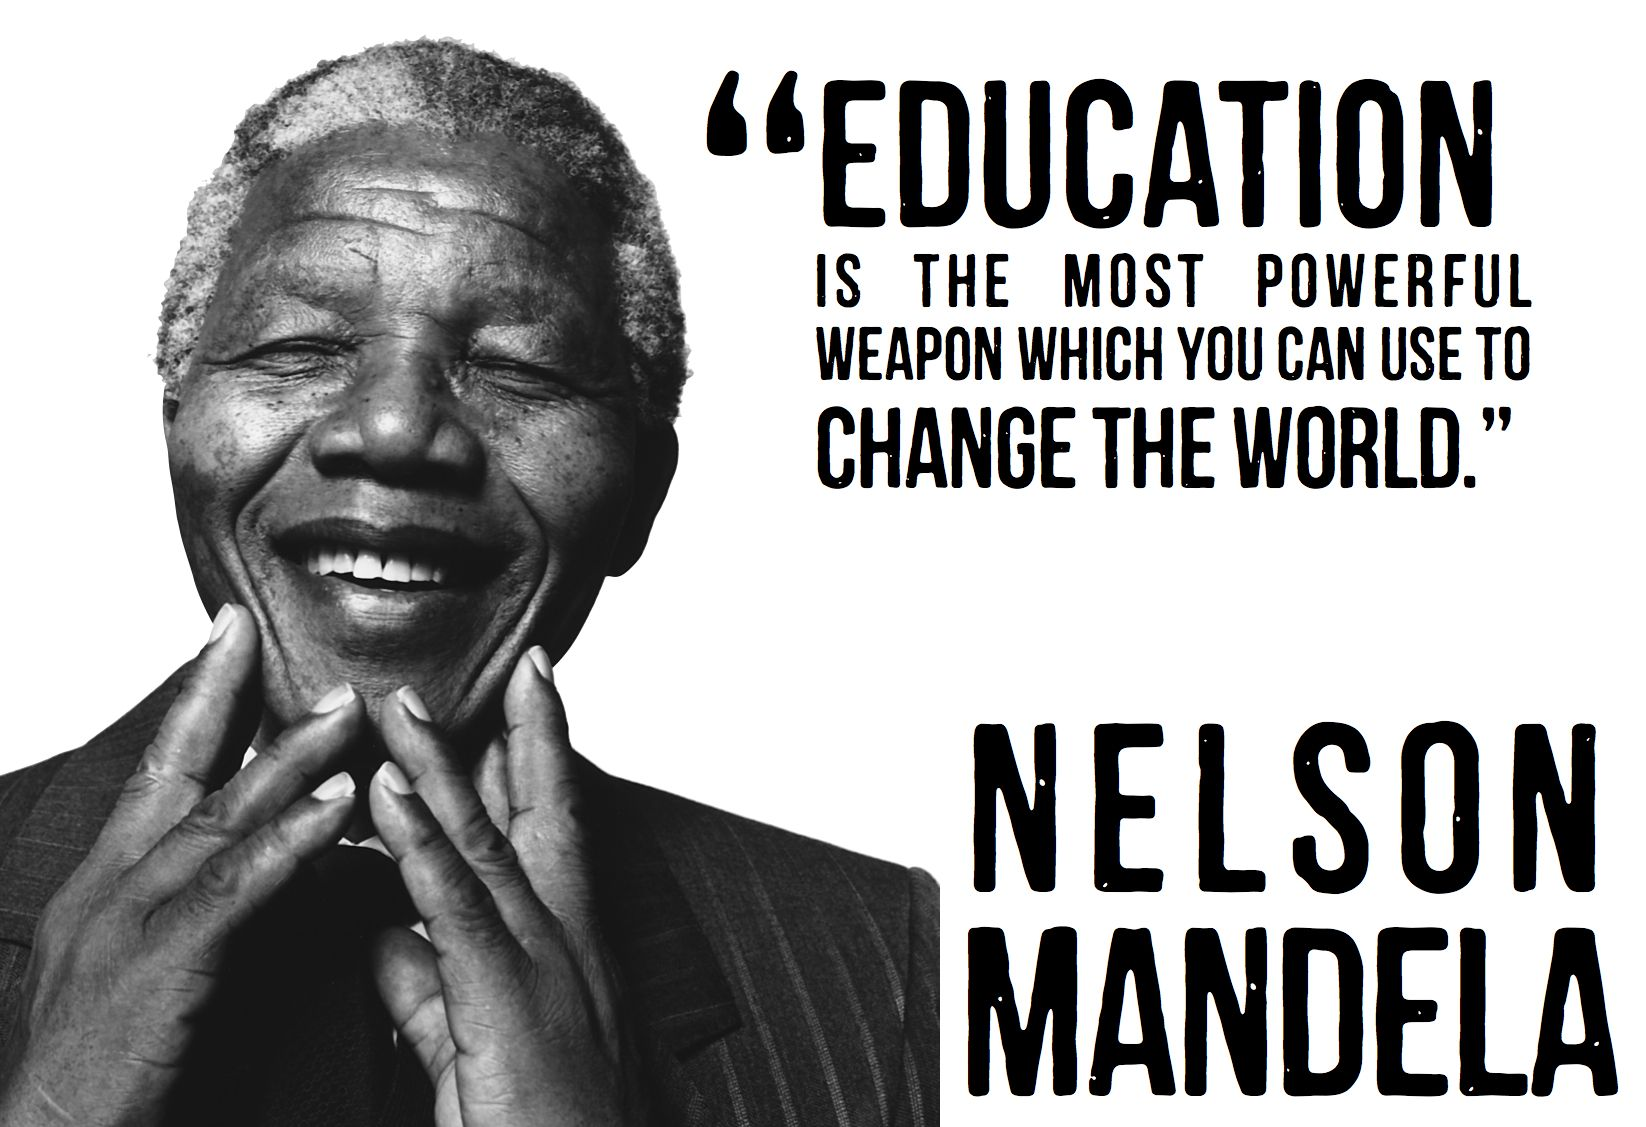 Happy 95th birthday nelson mandela thank you for expecting more and making the world